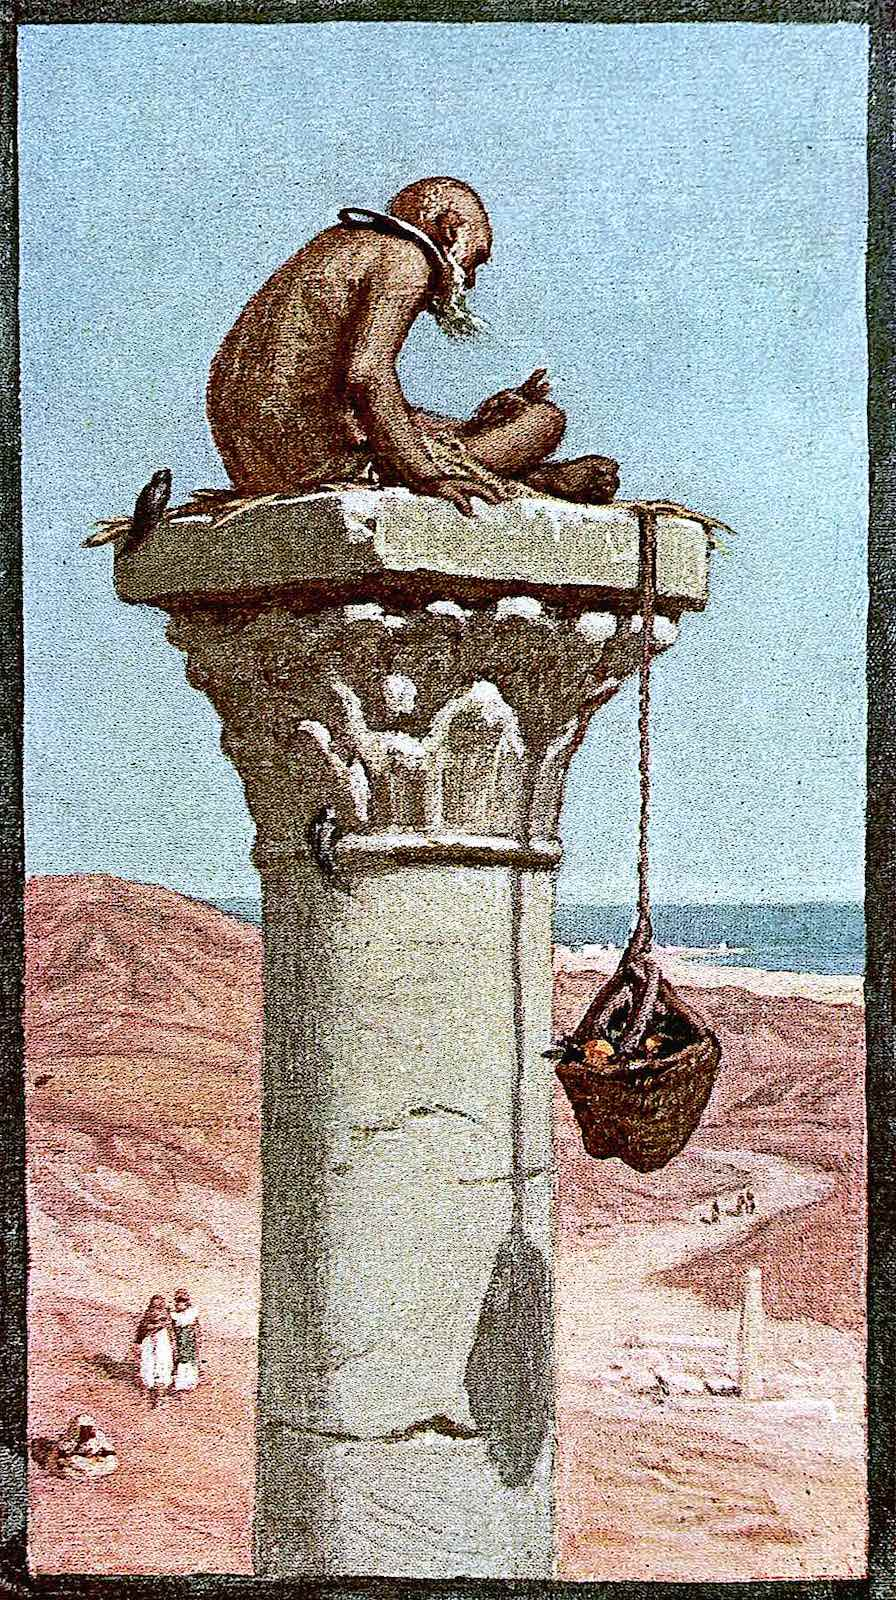 Elihu Vedder, a prisoner chained to the top of a stone pillar